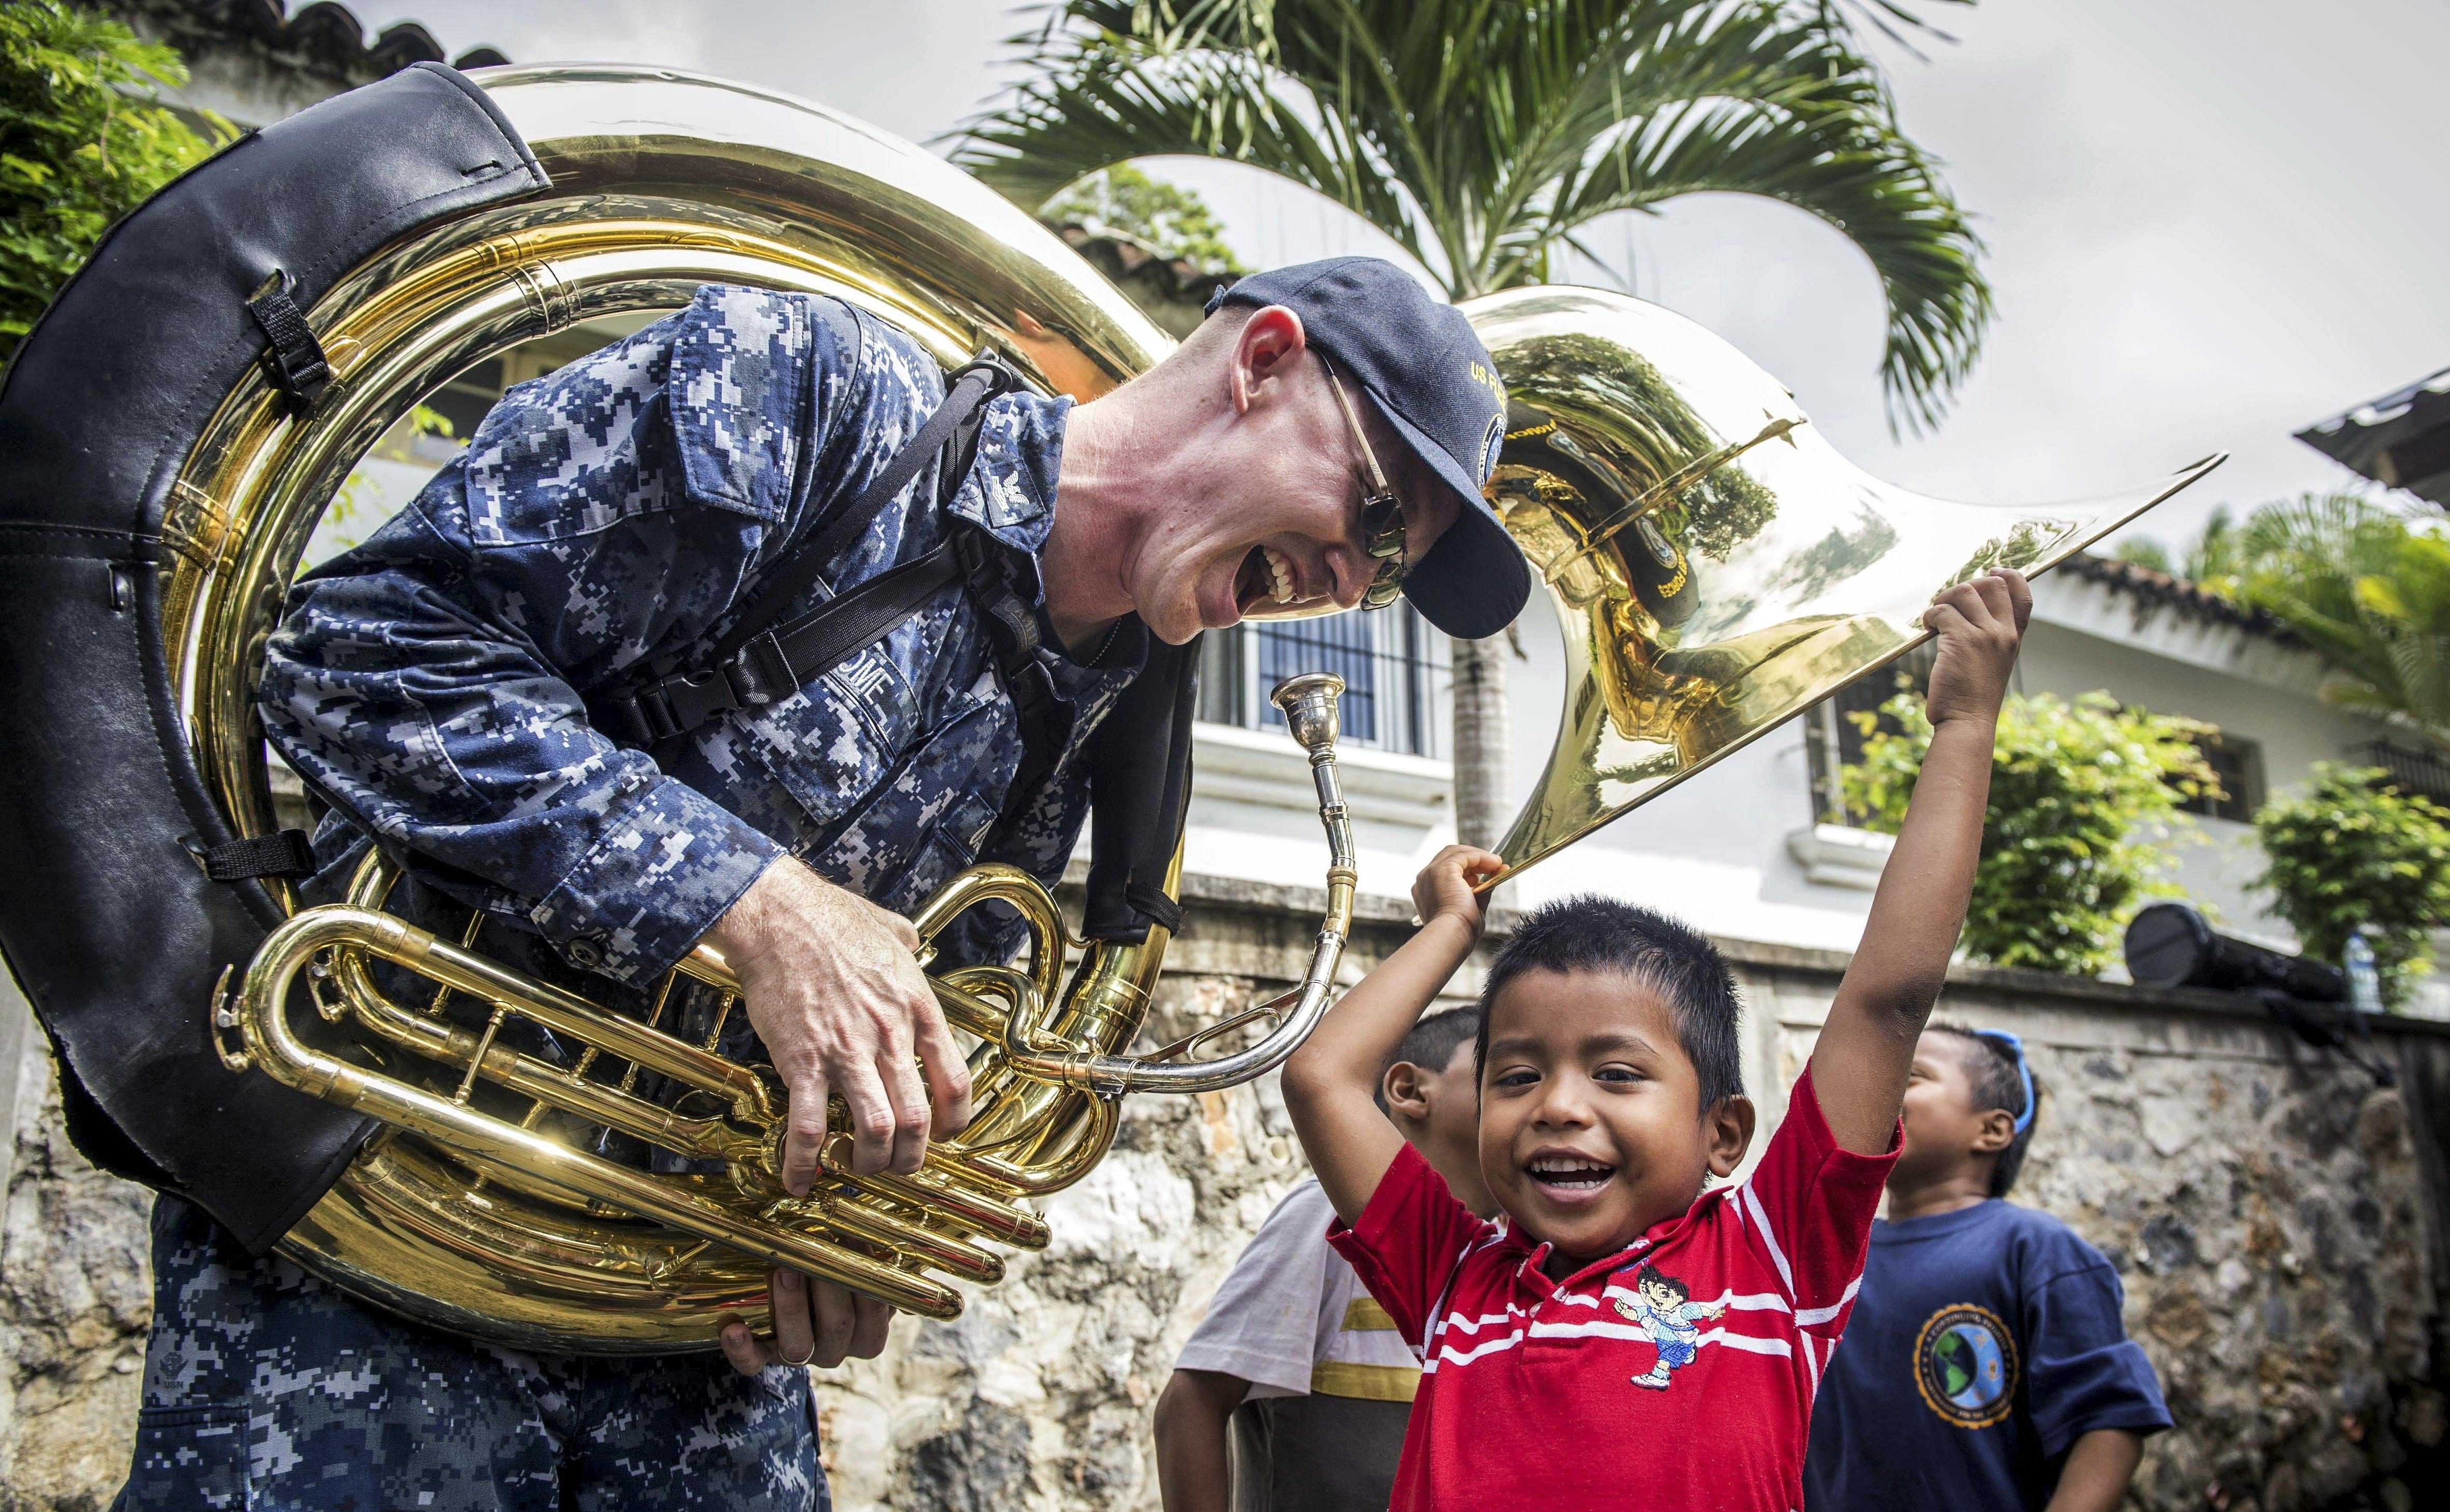 Navy Petty Officer plays with an child whilst wearing a helicon.